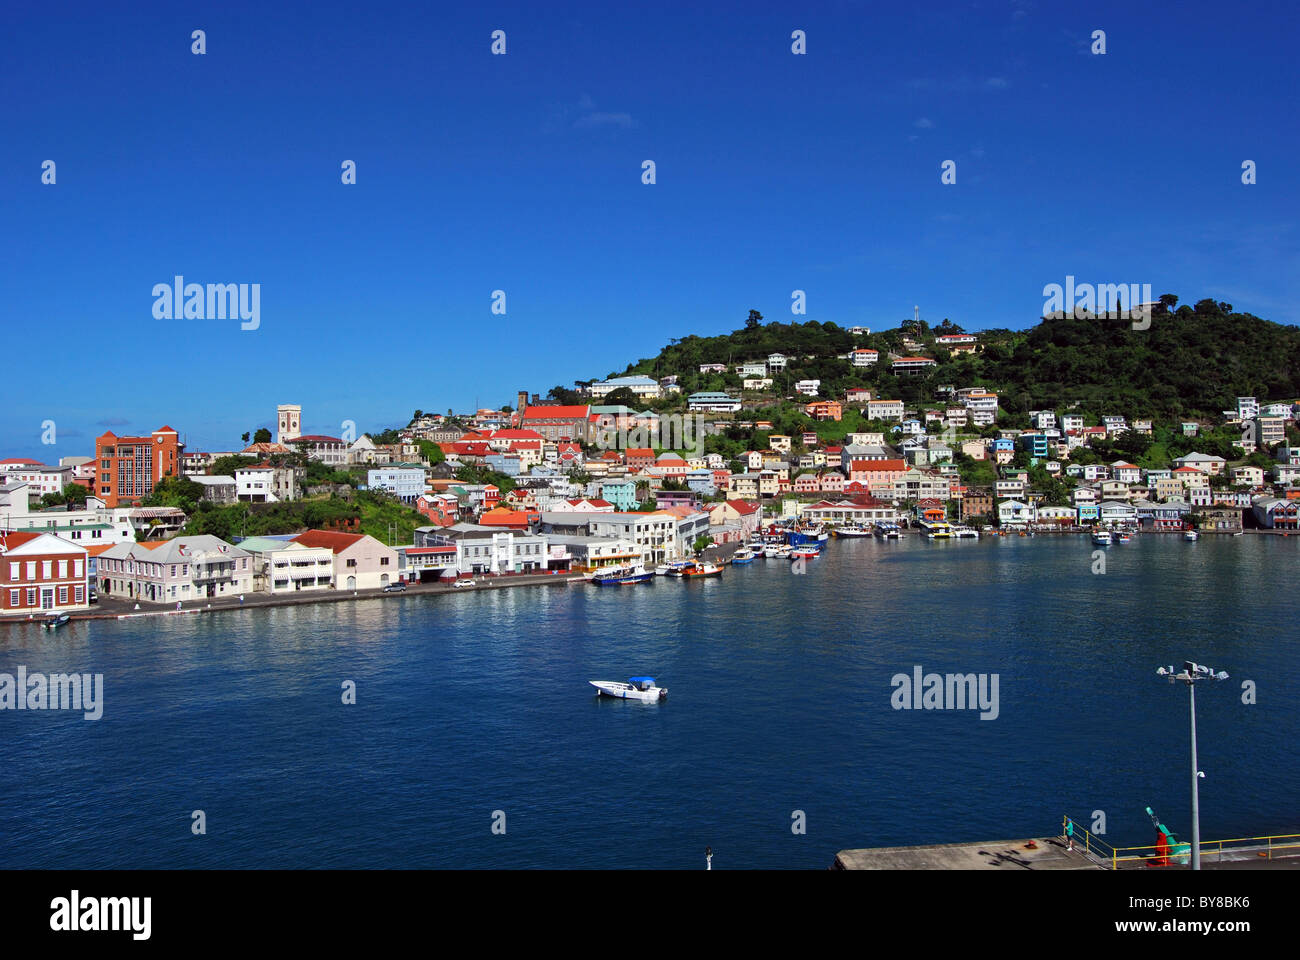 View of the town the coastline, St. George's, Grenada, Caribbean. Stock Photo